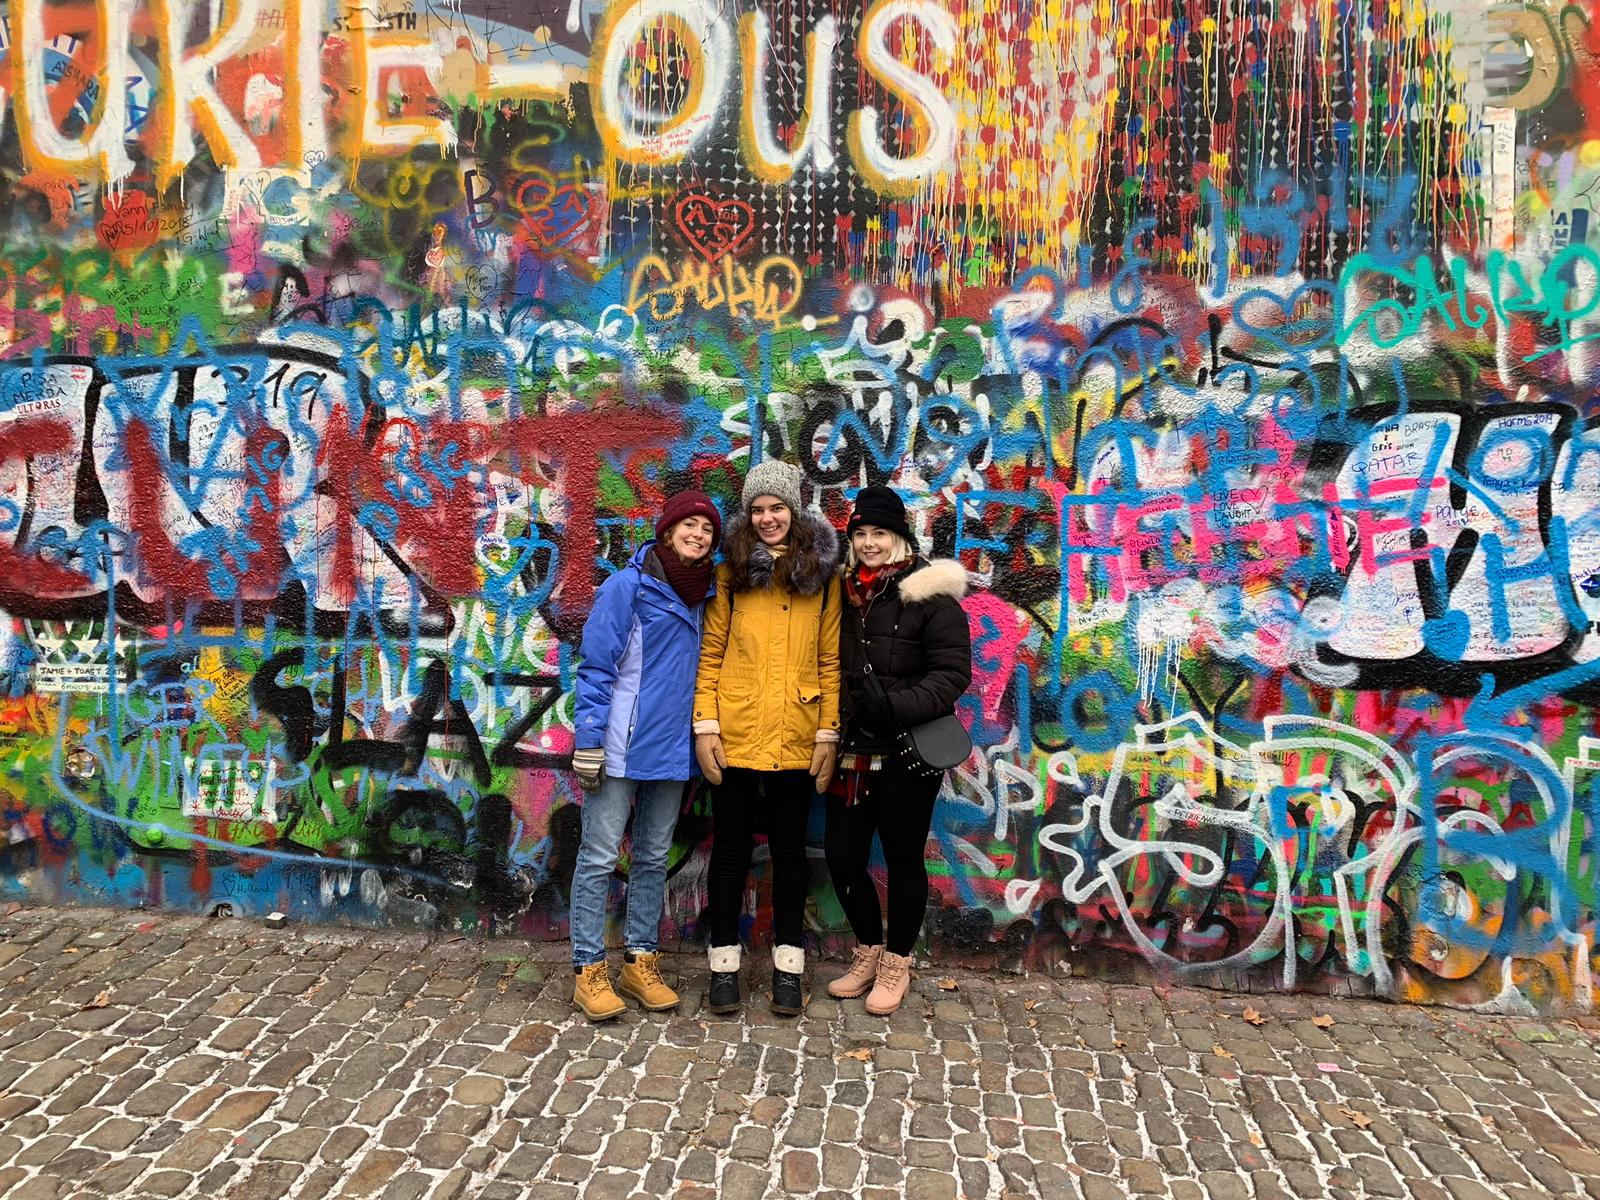 Jess, Dasha, and Jas, stand in front of a wall covered in overlapping graffiti. Many of the visible words are not in English.